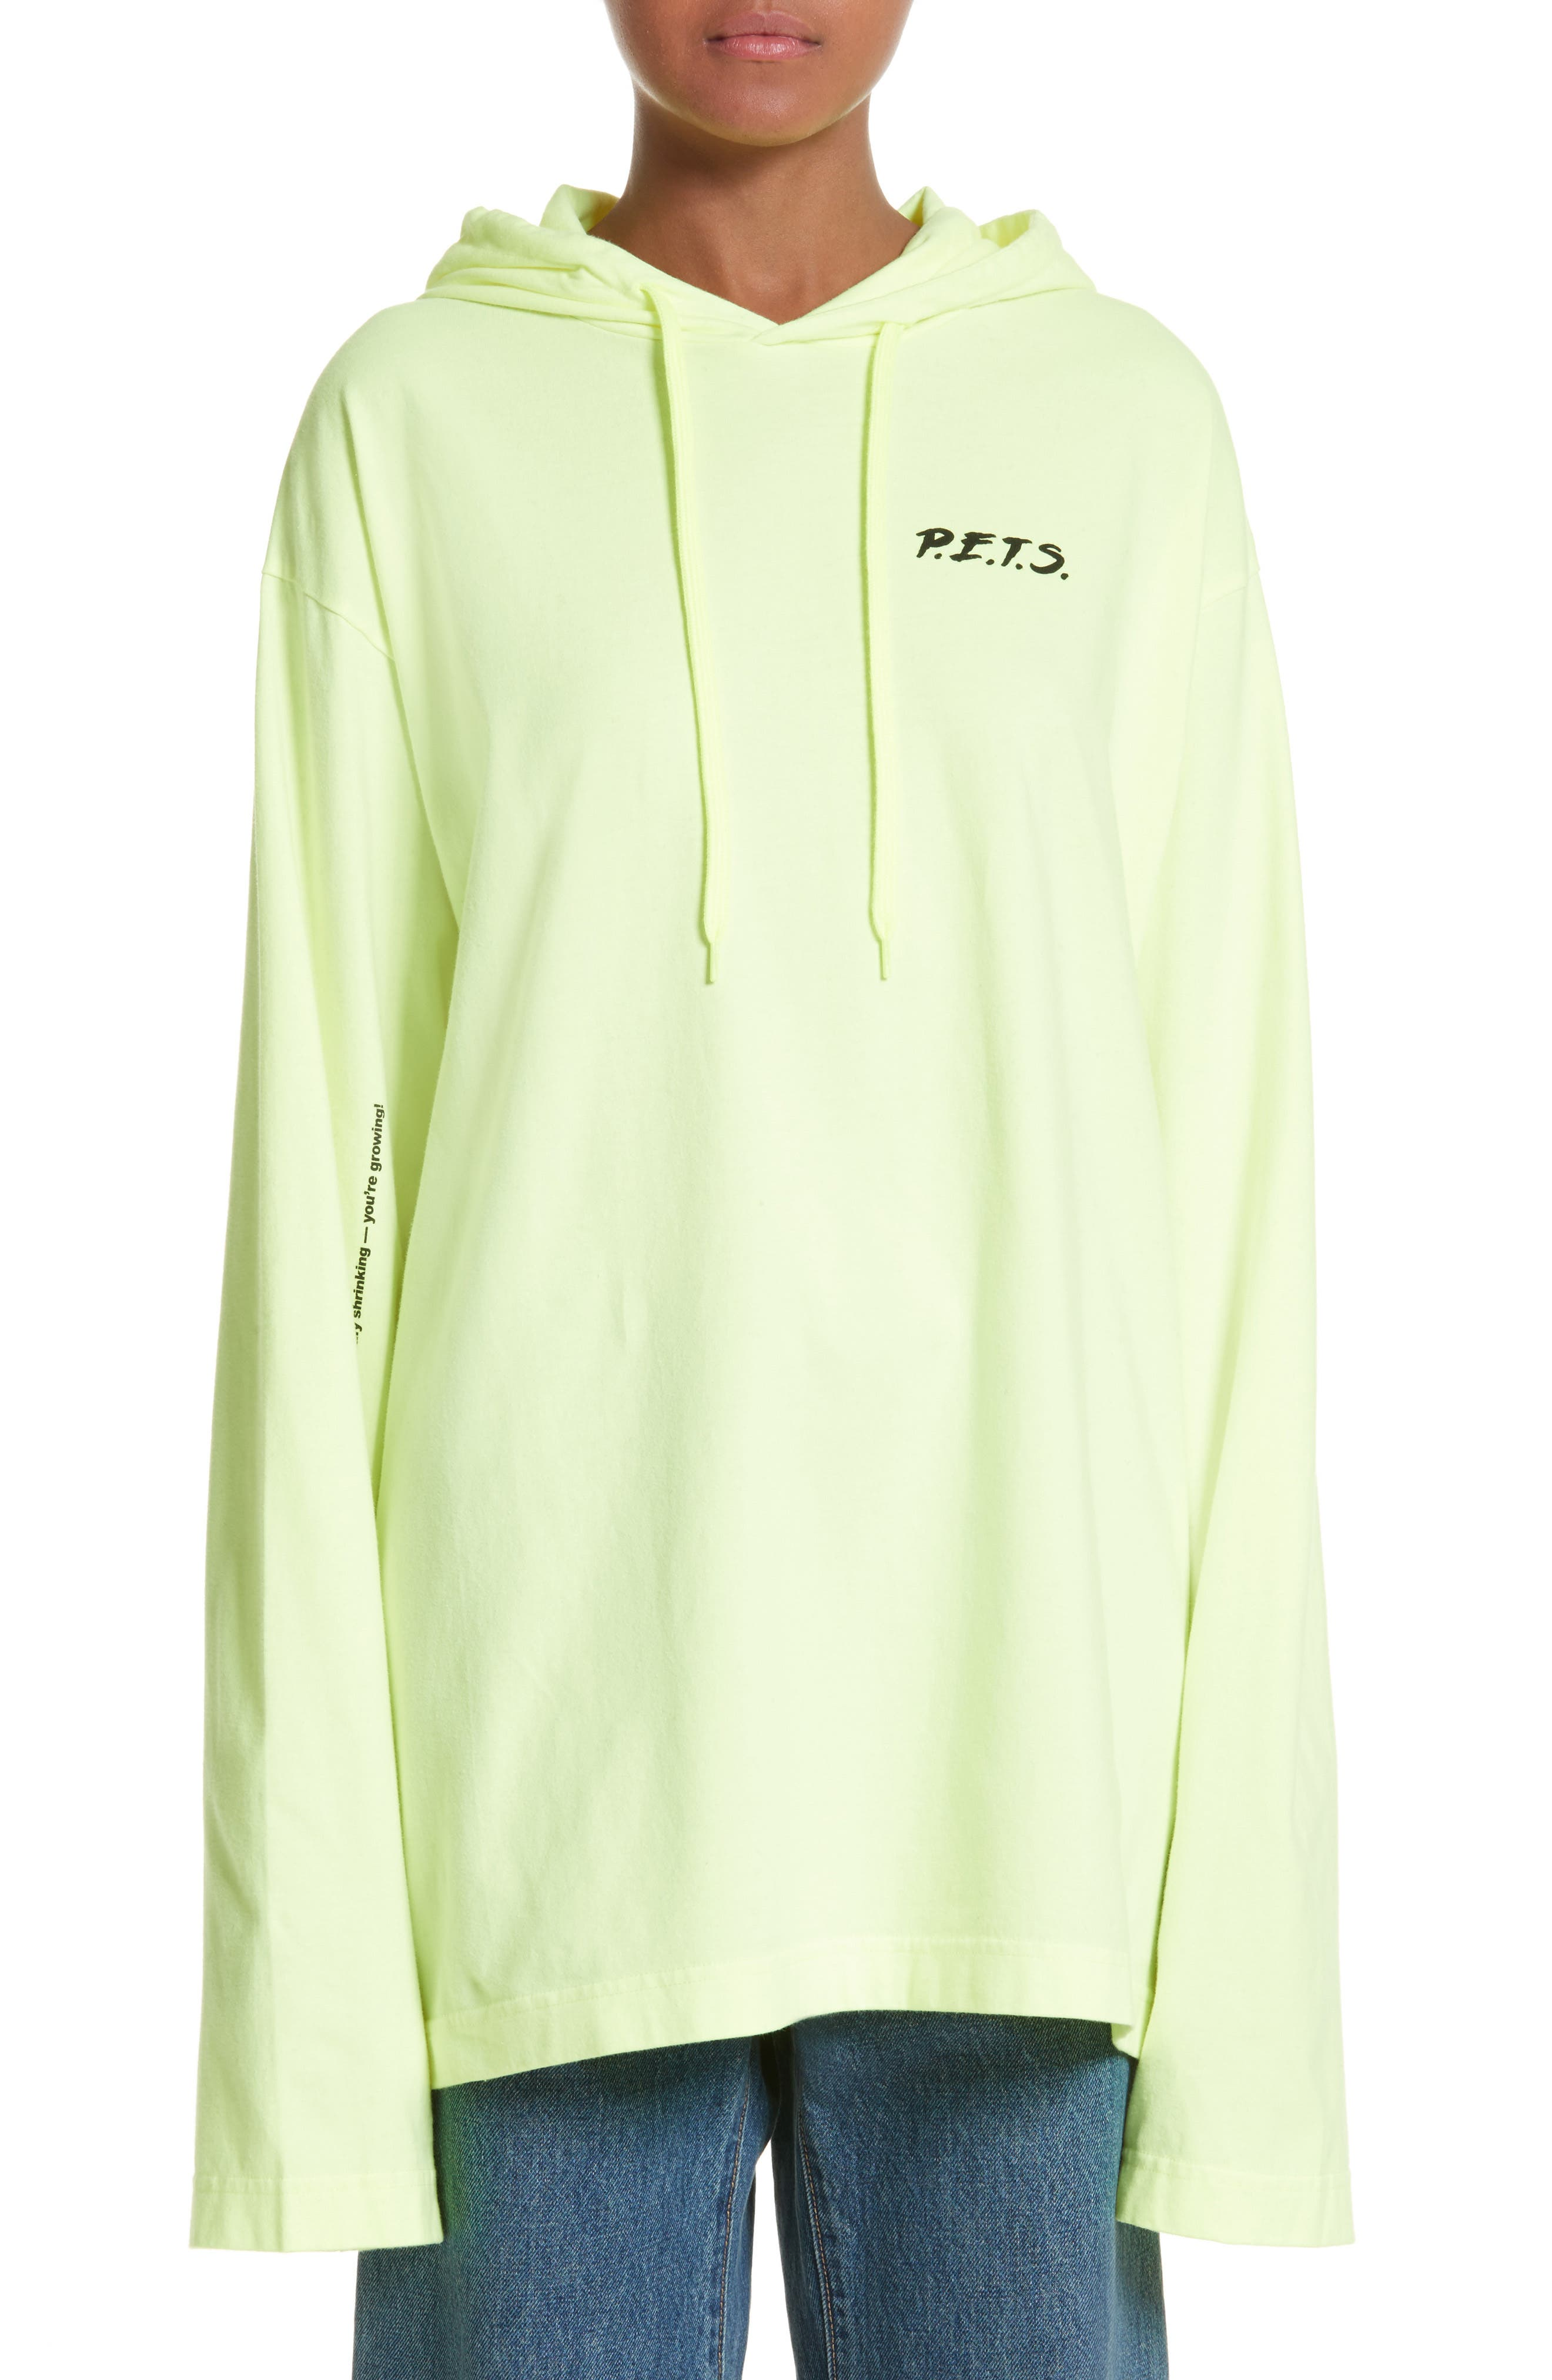 Main Image - Vetements P.E.T.S. Jersey Pullover Hoodie